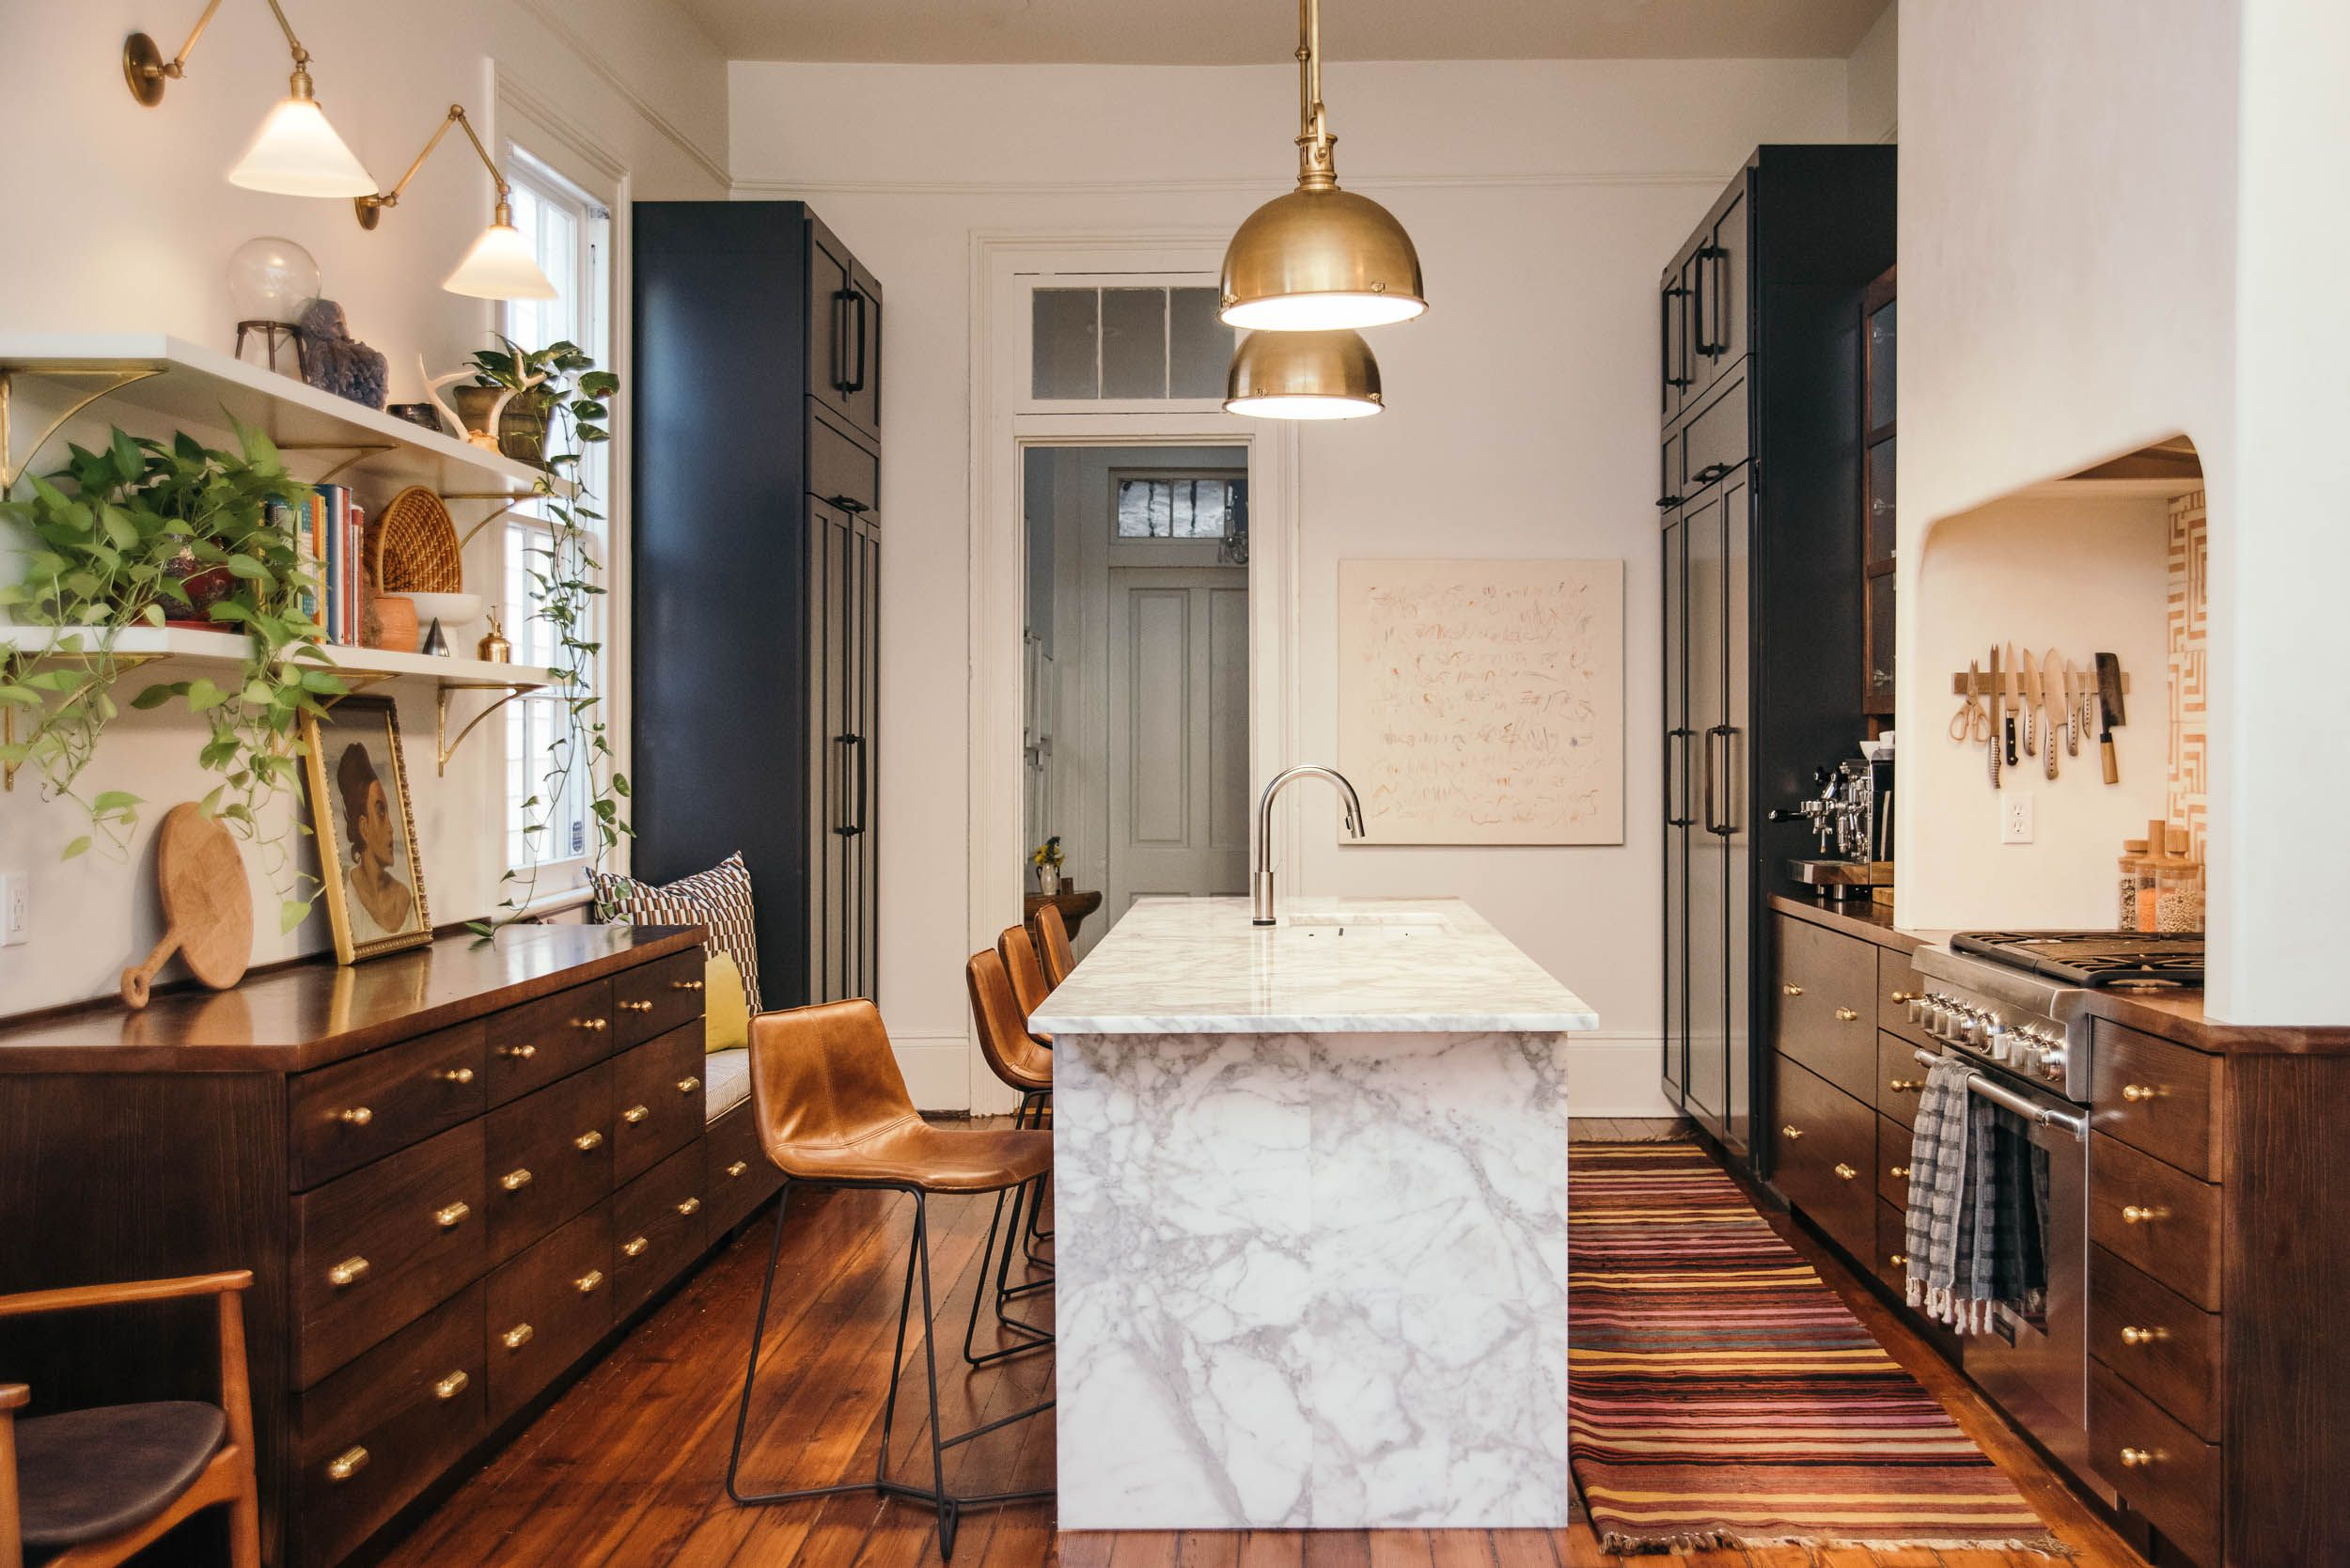 25 Best Kitchen Design Trends to Try in 2018